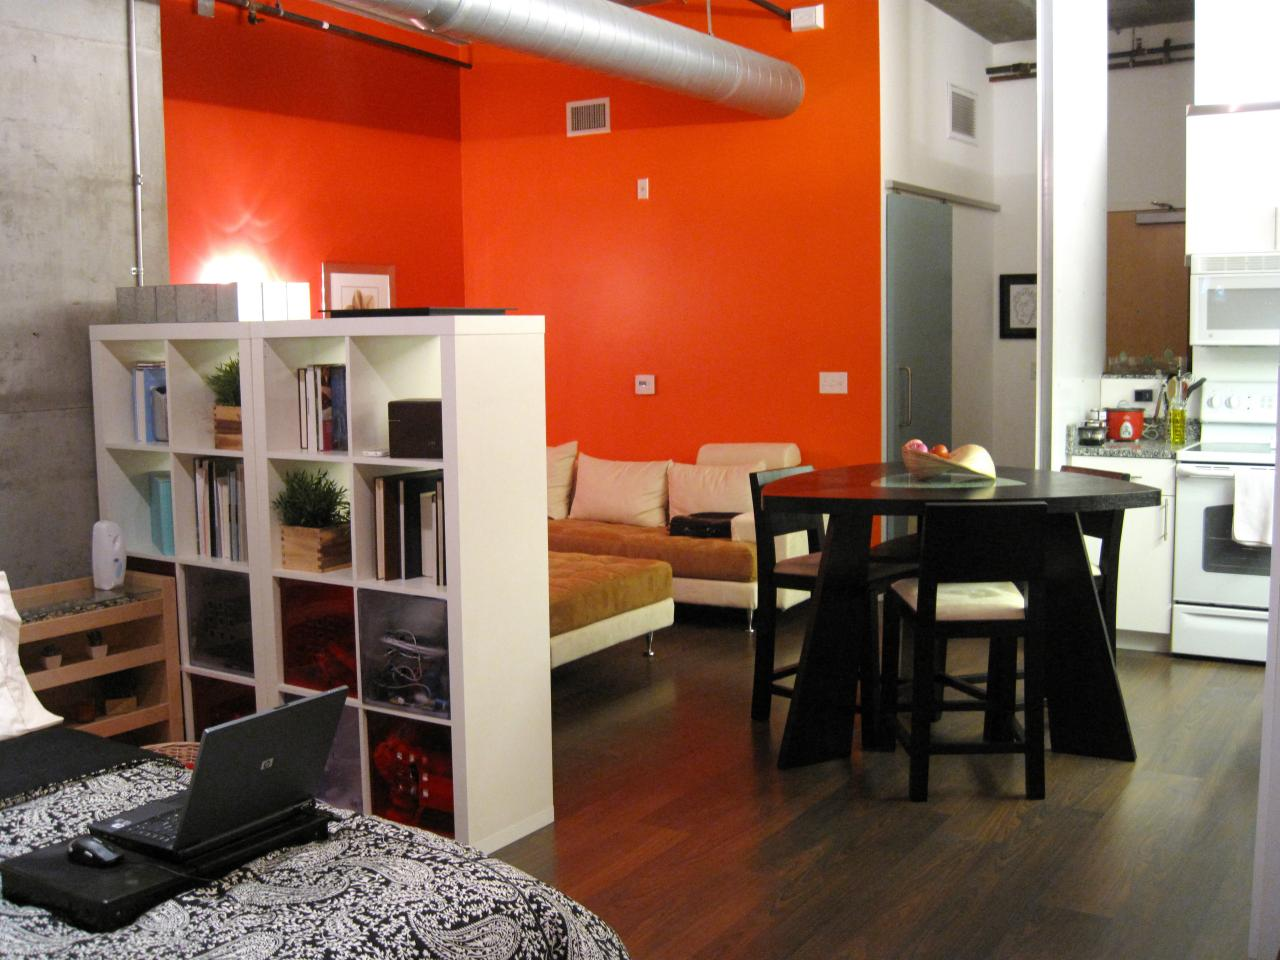 12 Design Ideas for Your Studio Apartment | HGTV\'s Decorating ...